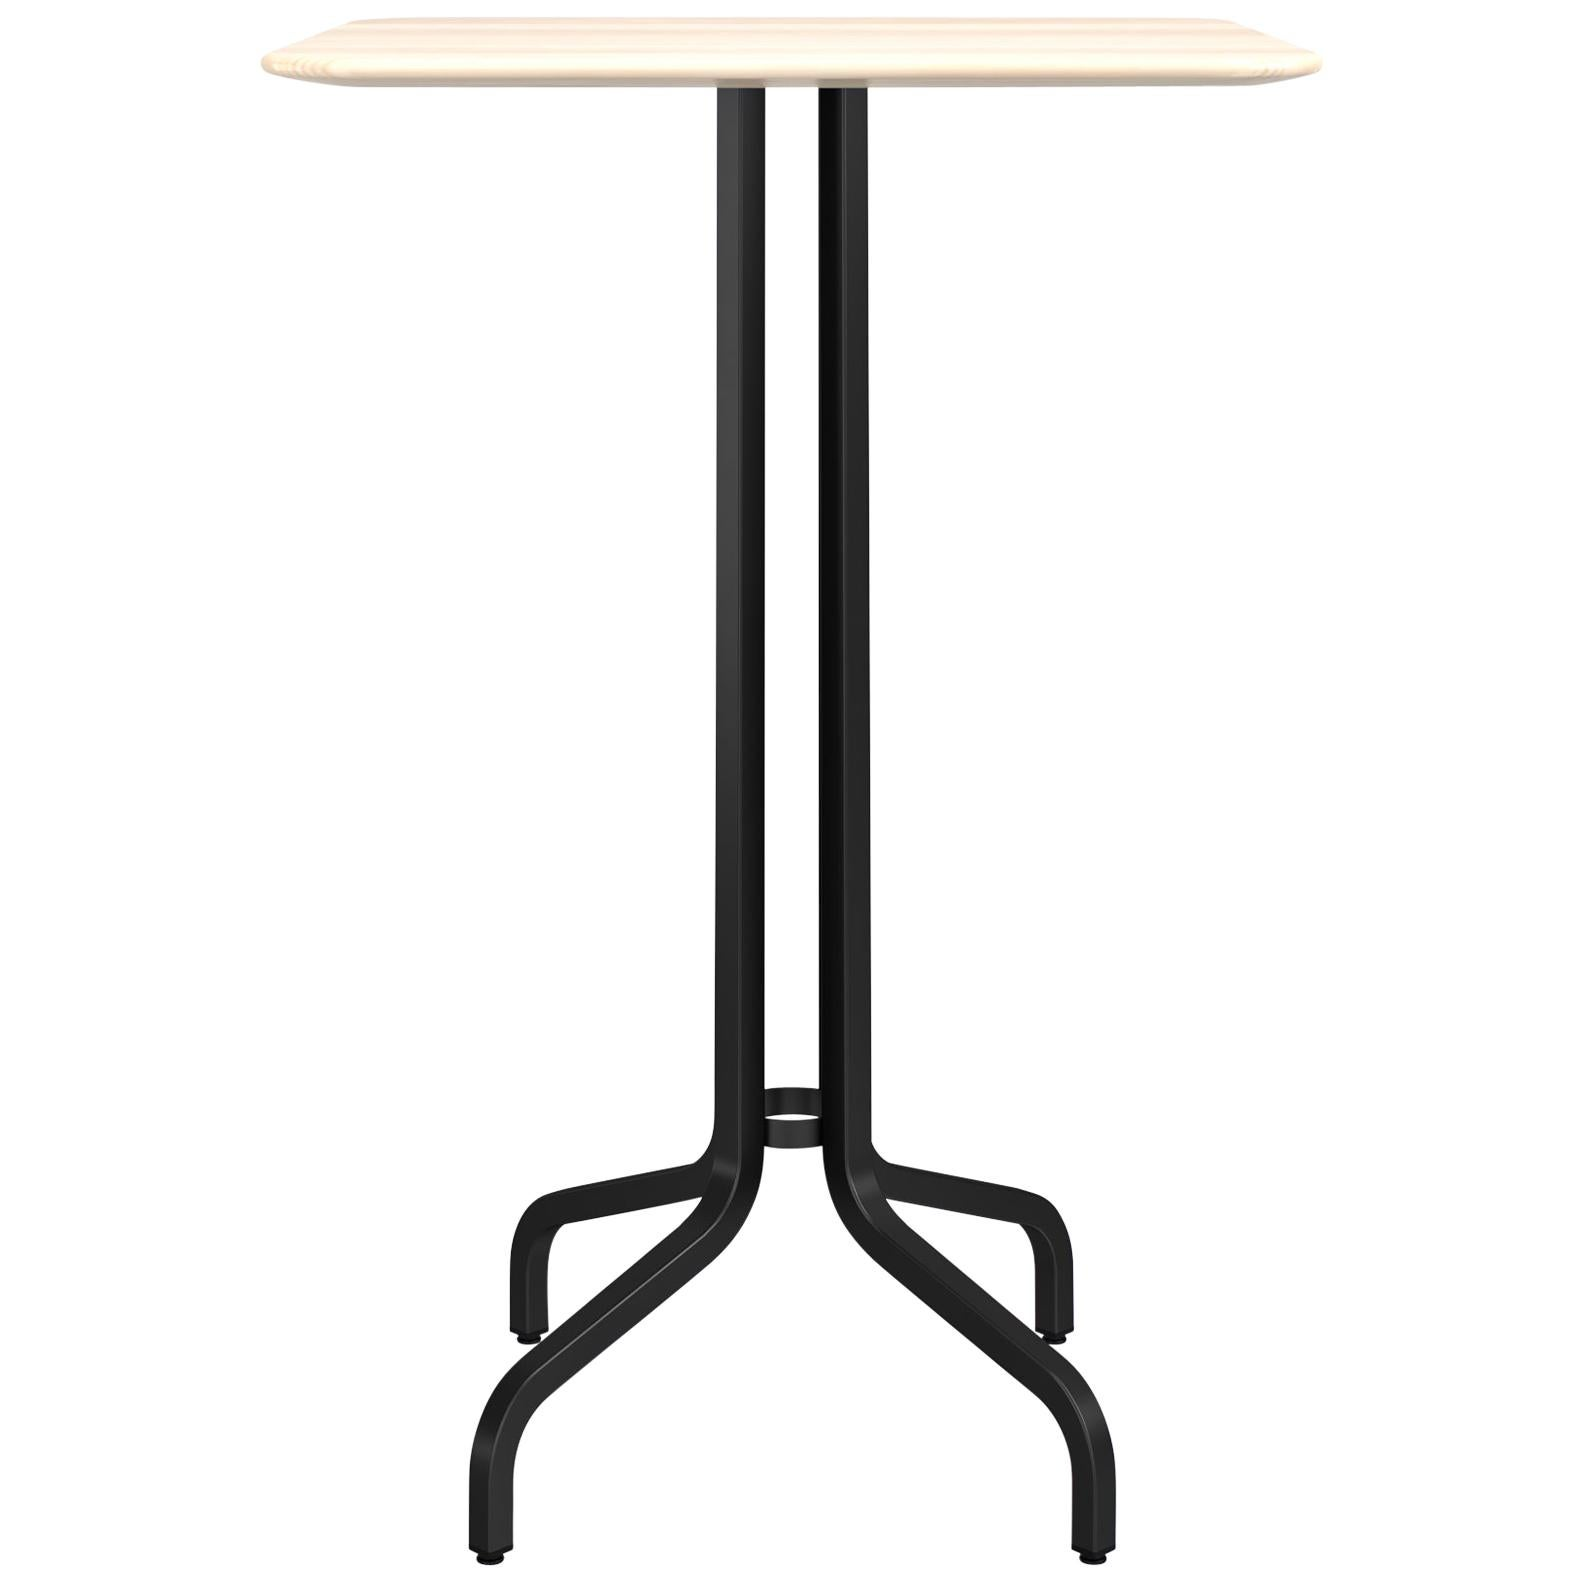 Emeco 1 Inch Large Bar Table with Black Legs & Wood Top by Jasper Morrison